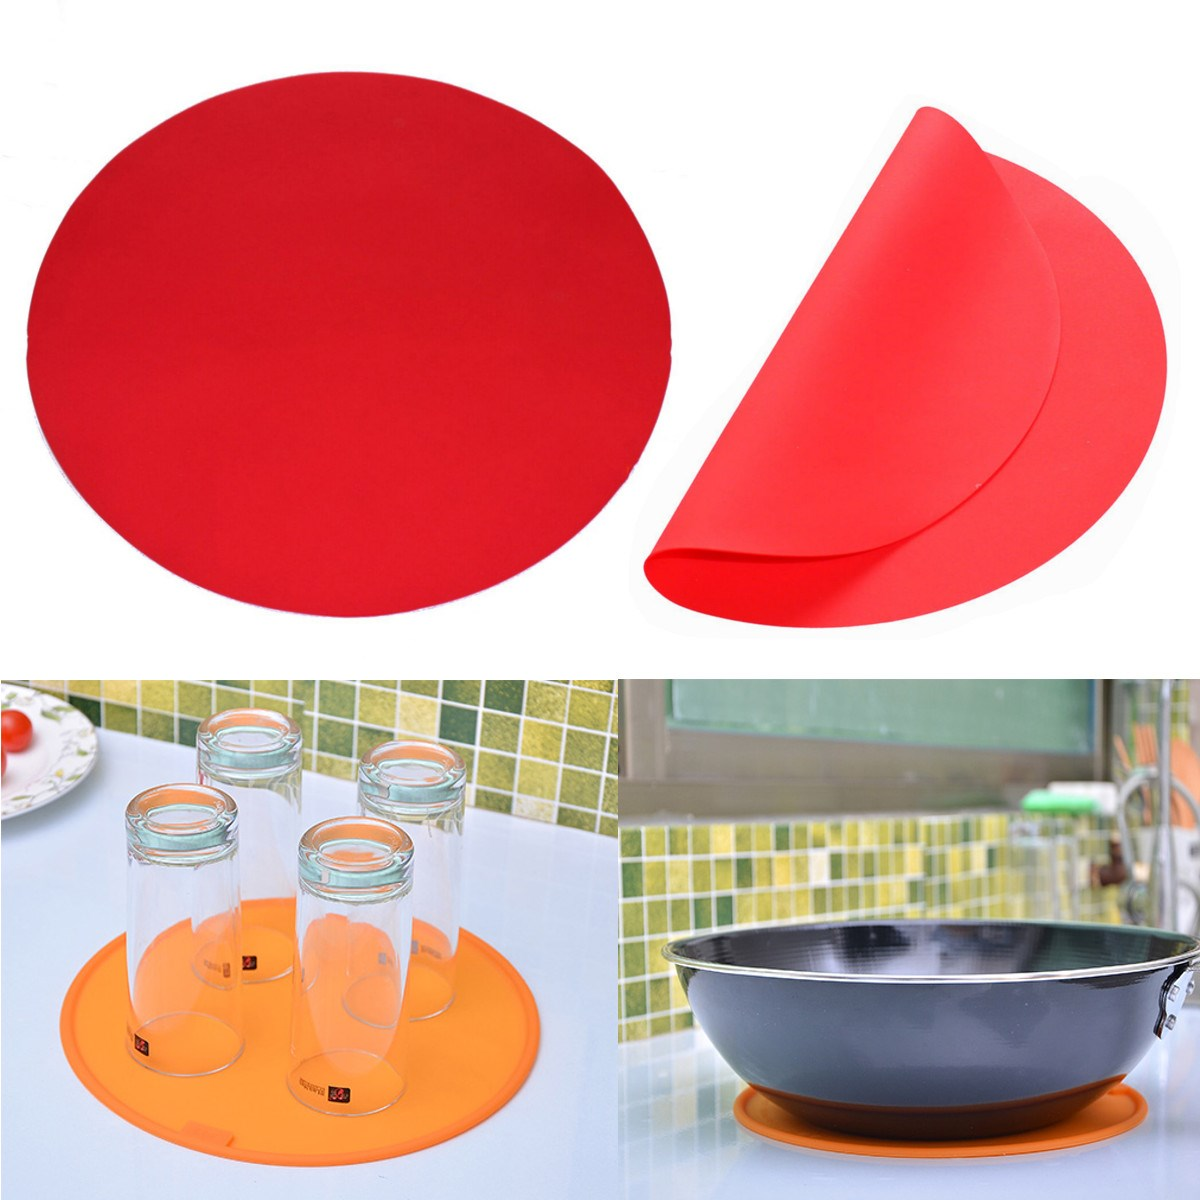 Round Silicone Baking Mat 30cm Oven Cookie Pizza Sheet